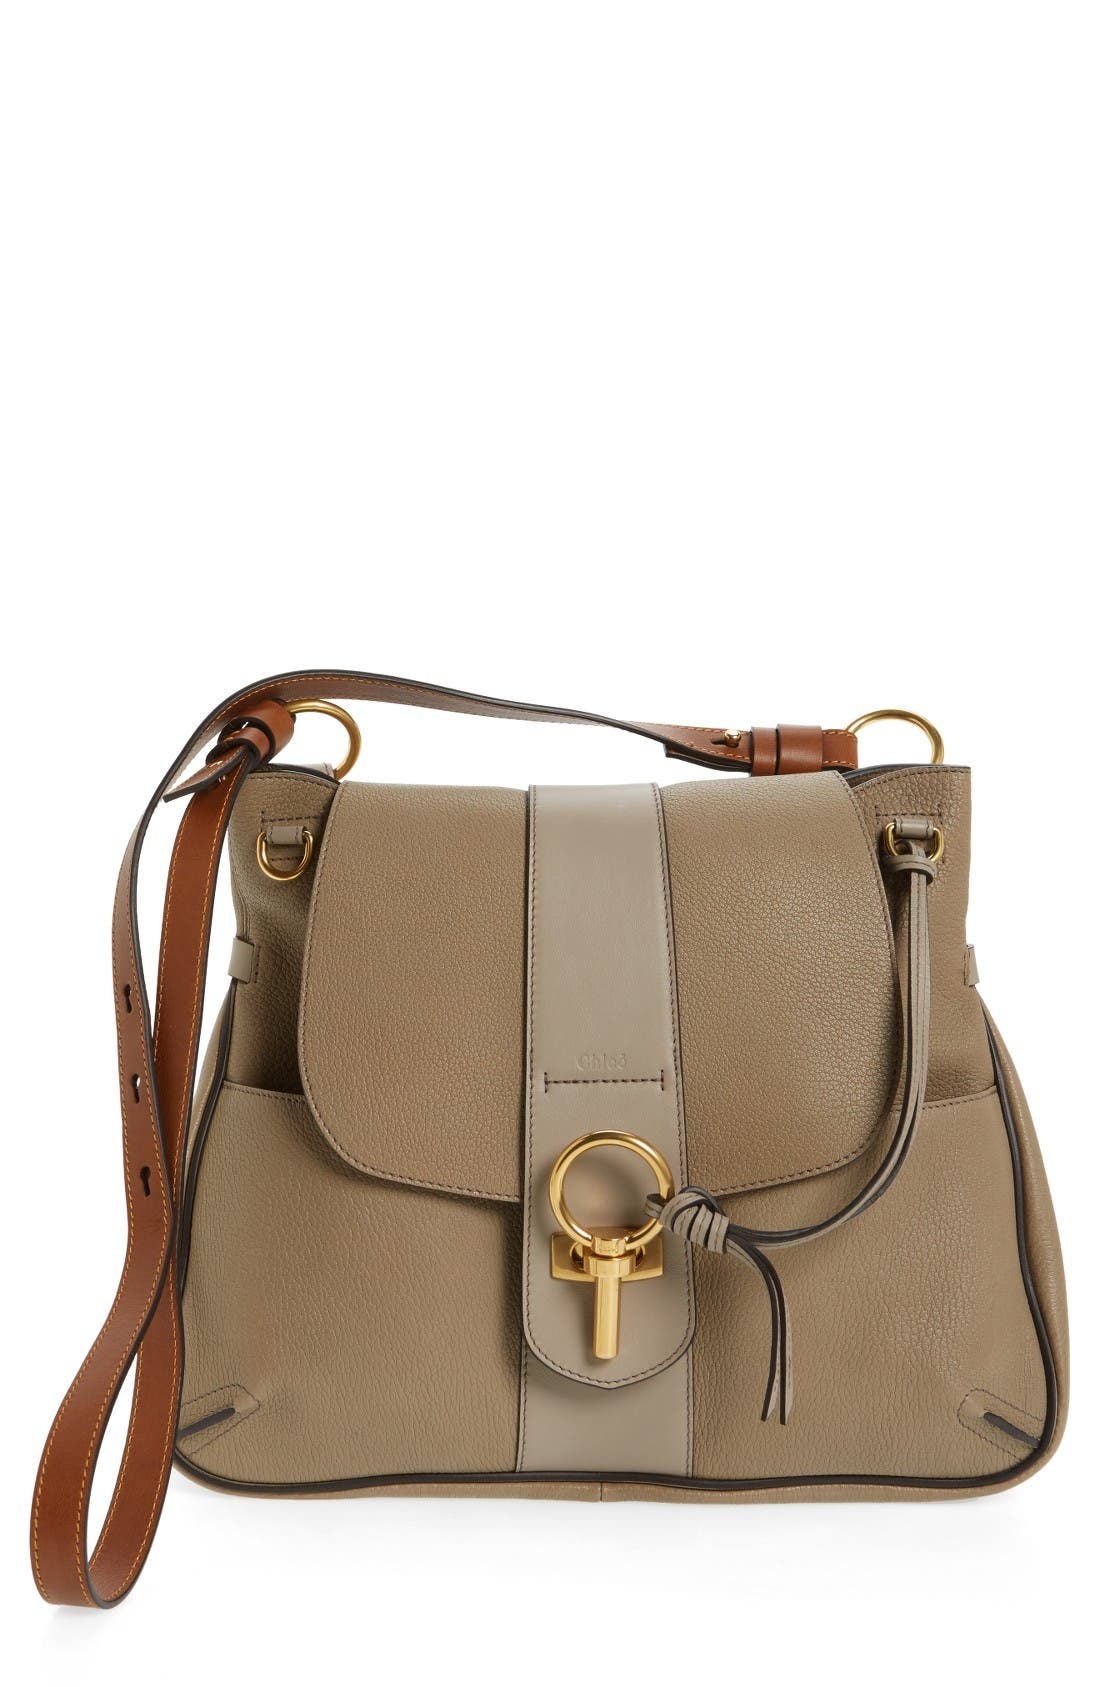 Main Image - Chloé Medium Lexa Leather Shoulder Bag